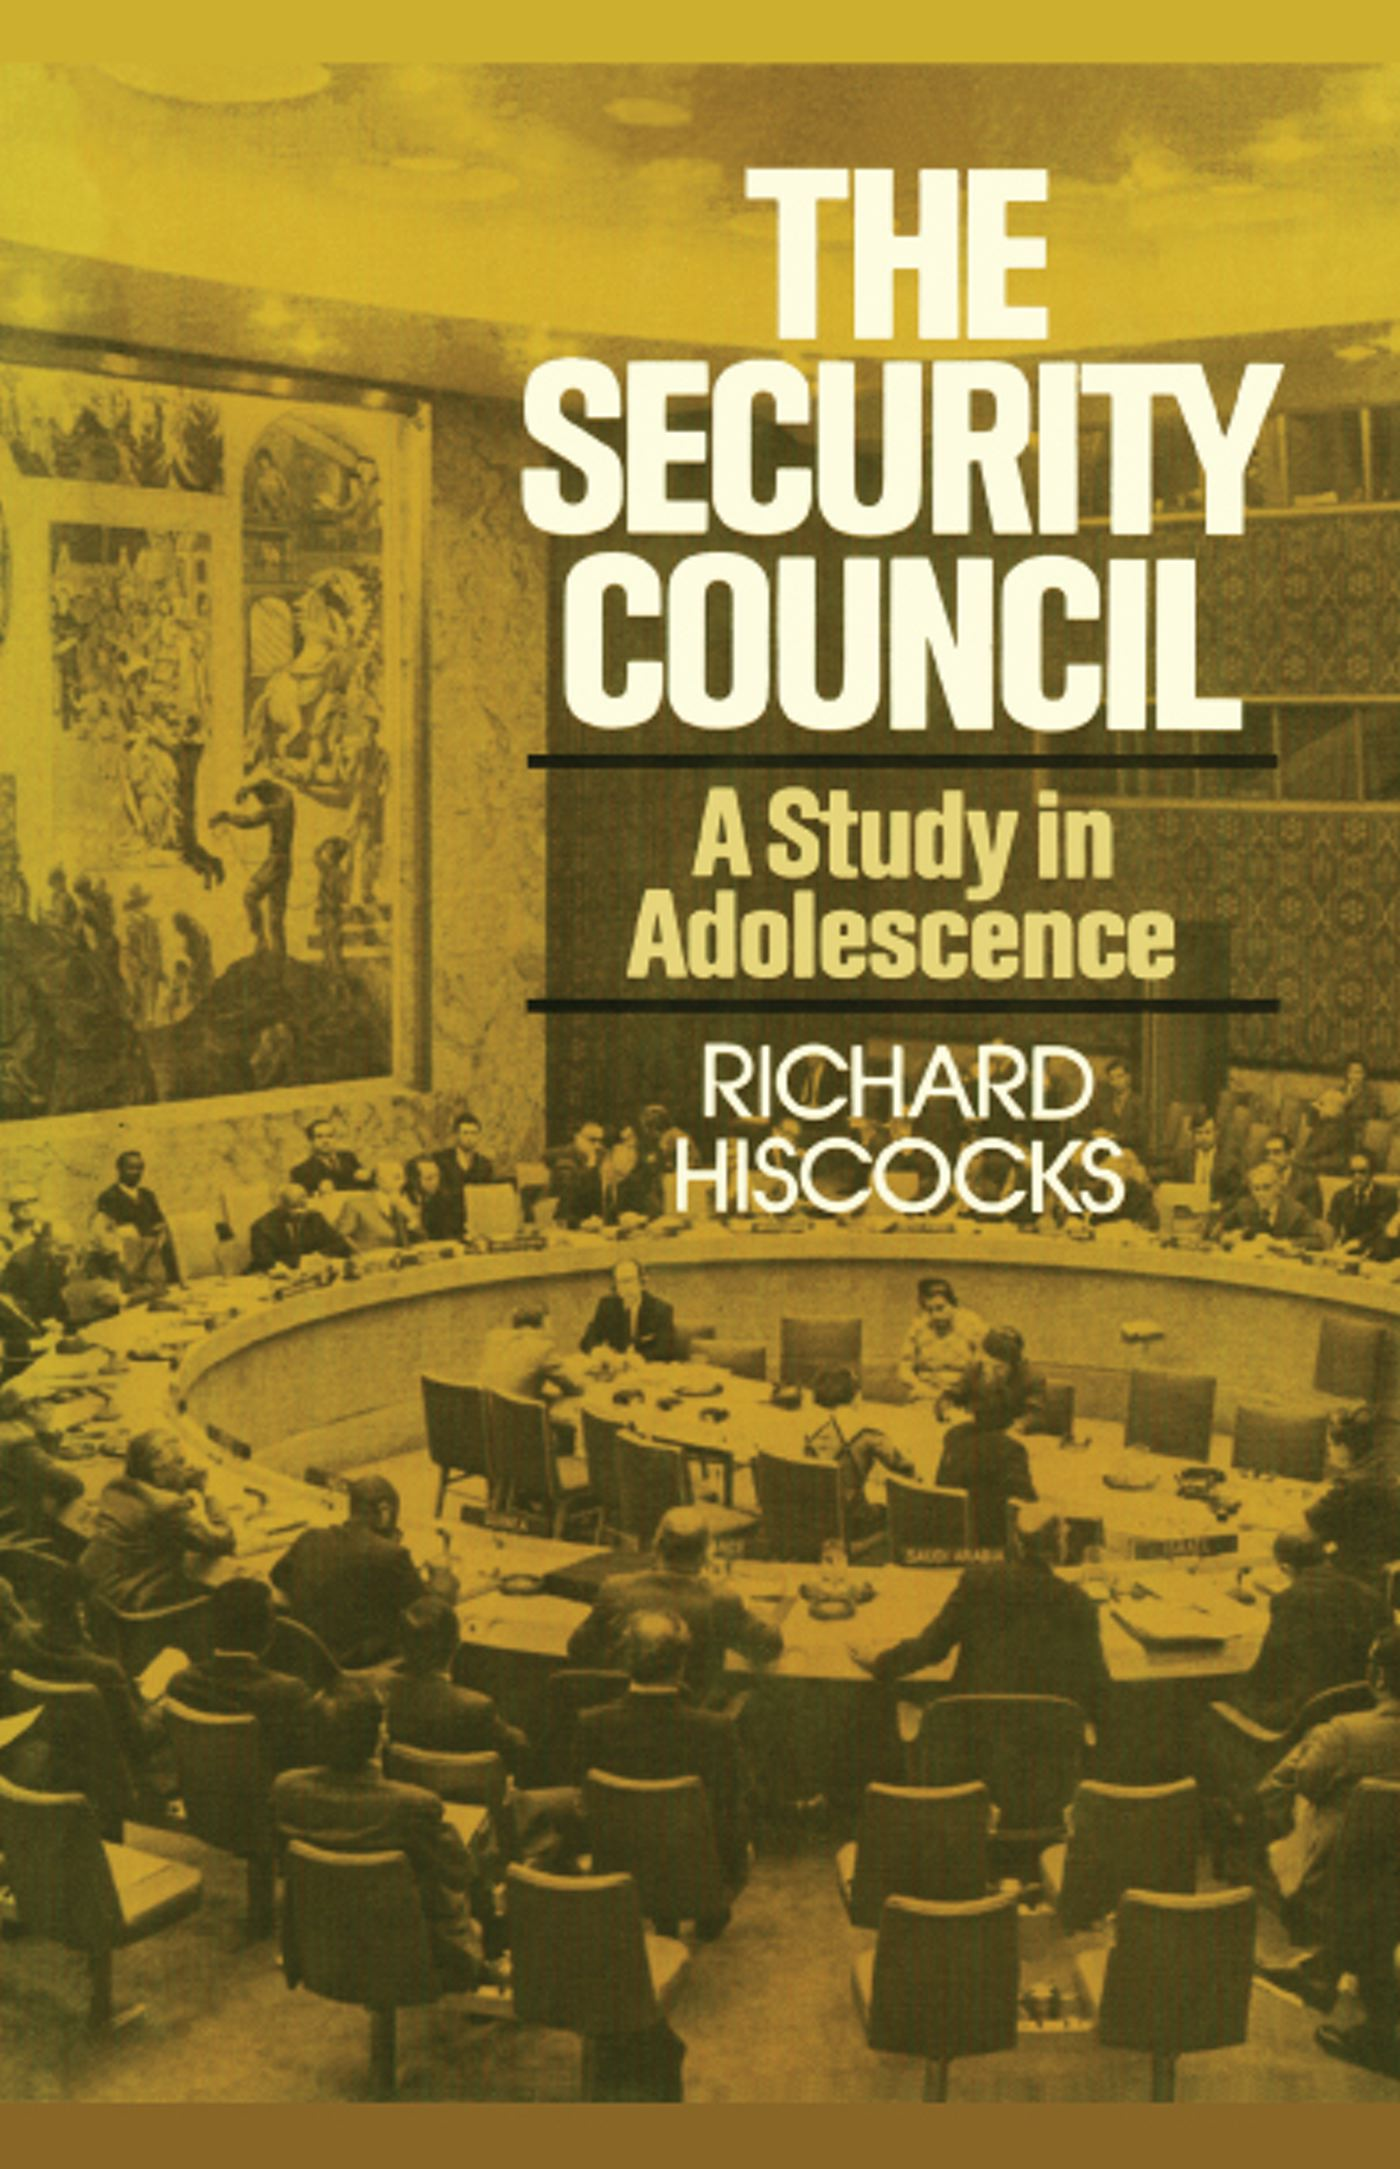 Security council (a study in adolescence) 9781416577737 hr